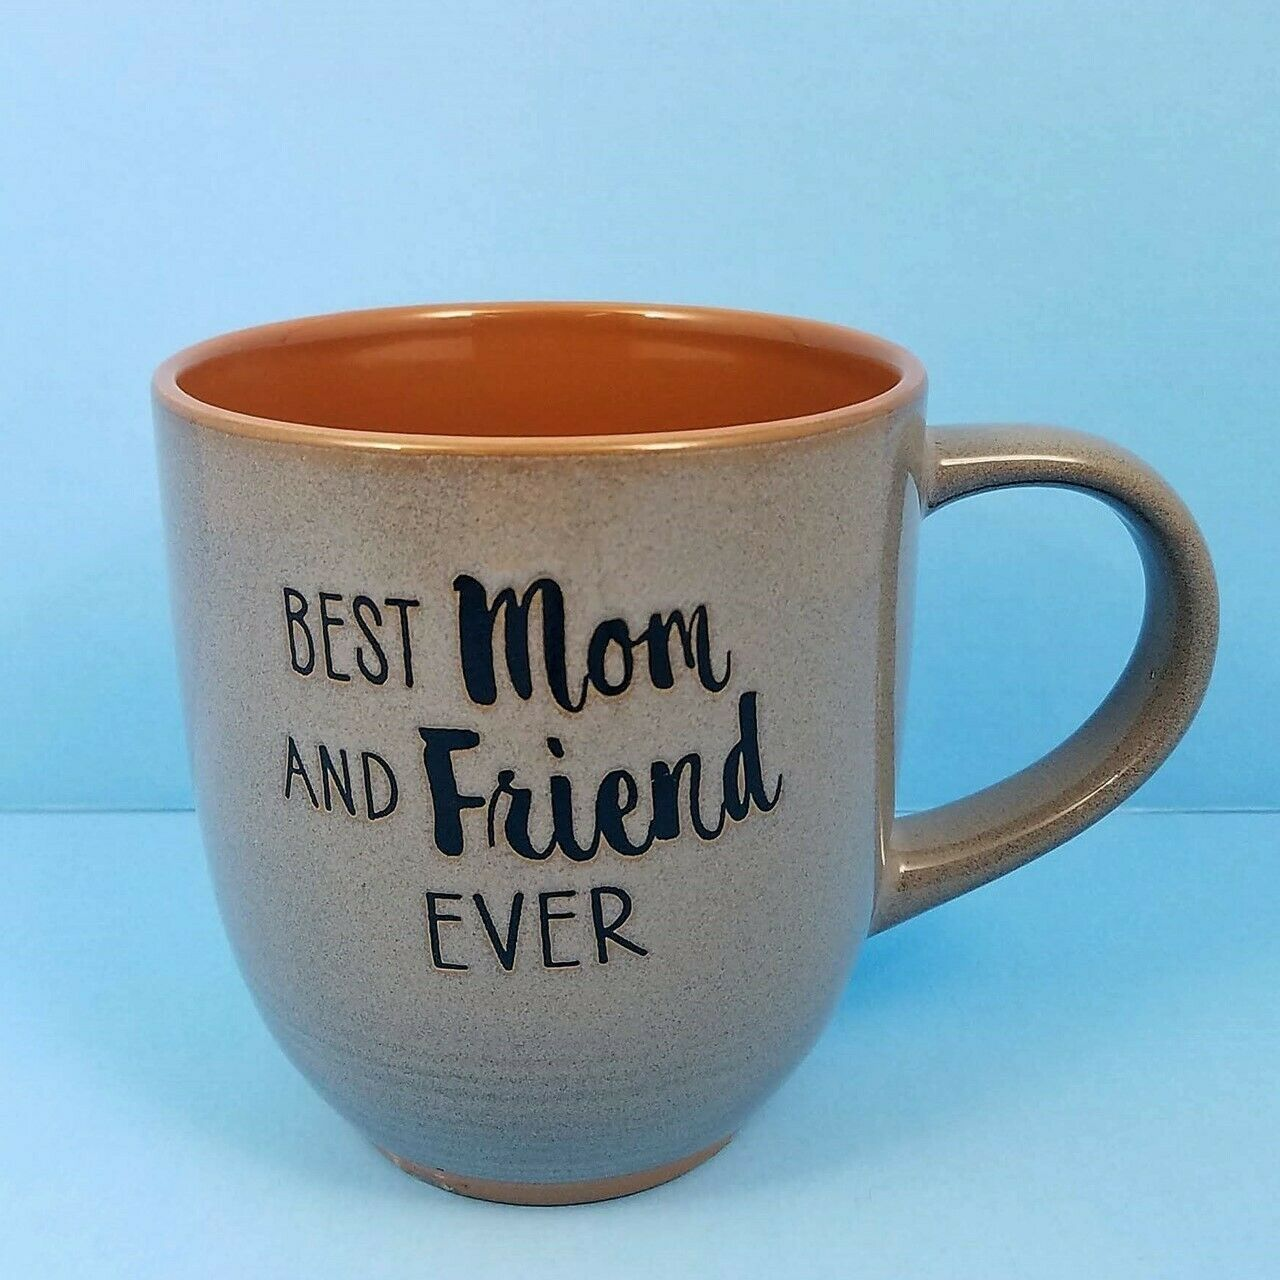 Best Mom and Friend Coffee Mug Cup or Pen Holder by Blue Sky 16oz 455ml